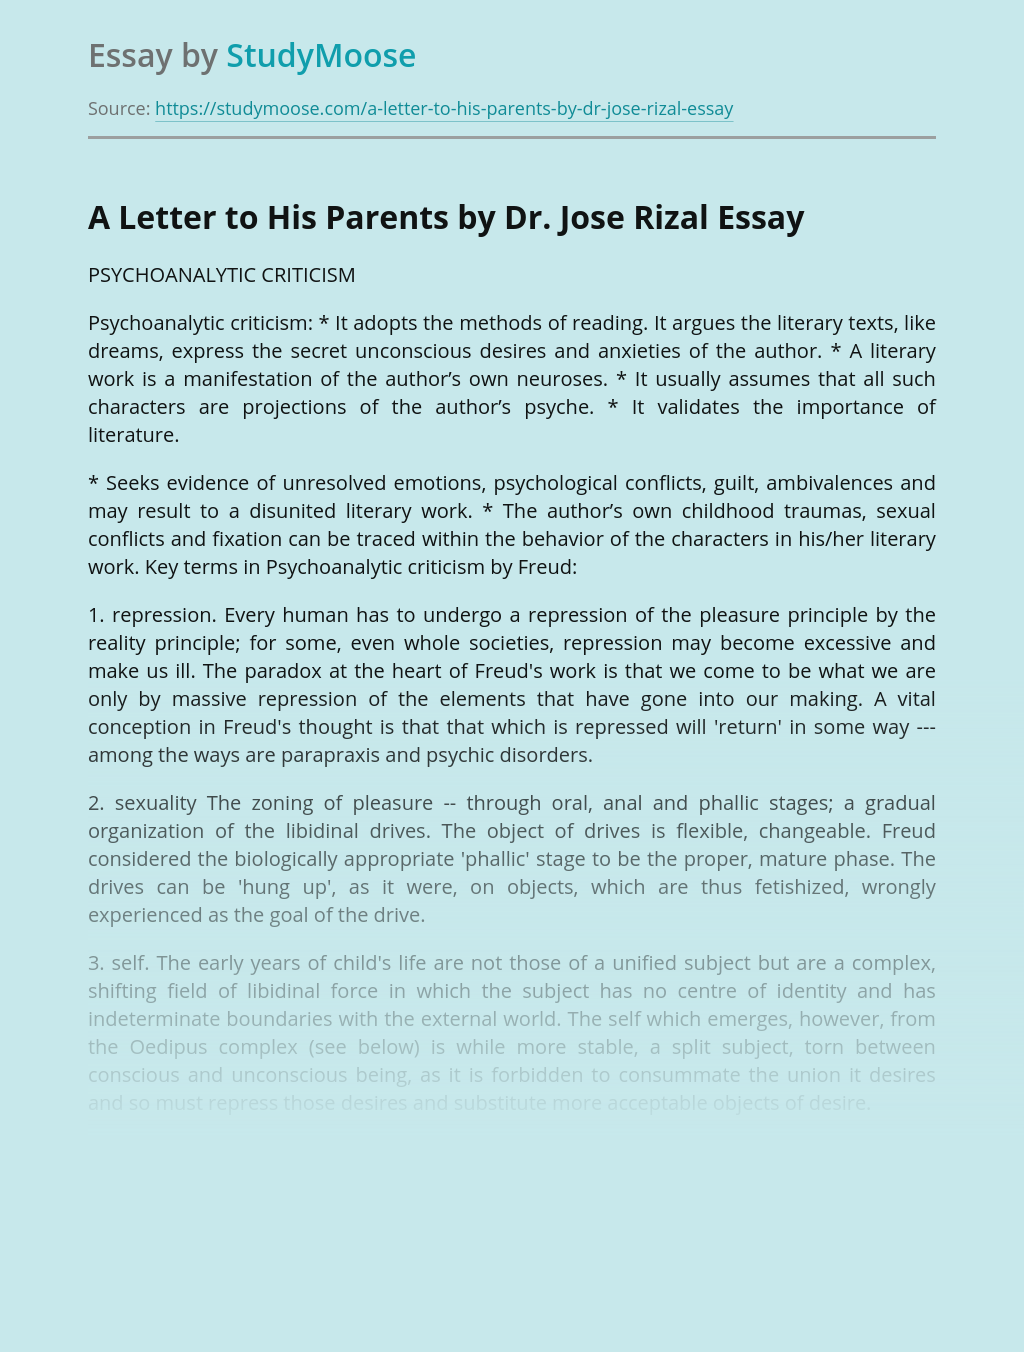 A Letter to His Parents by Dr. Jose Rizal